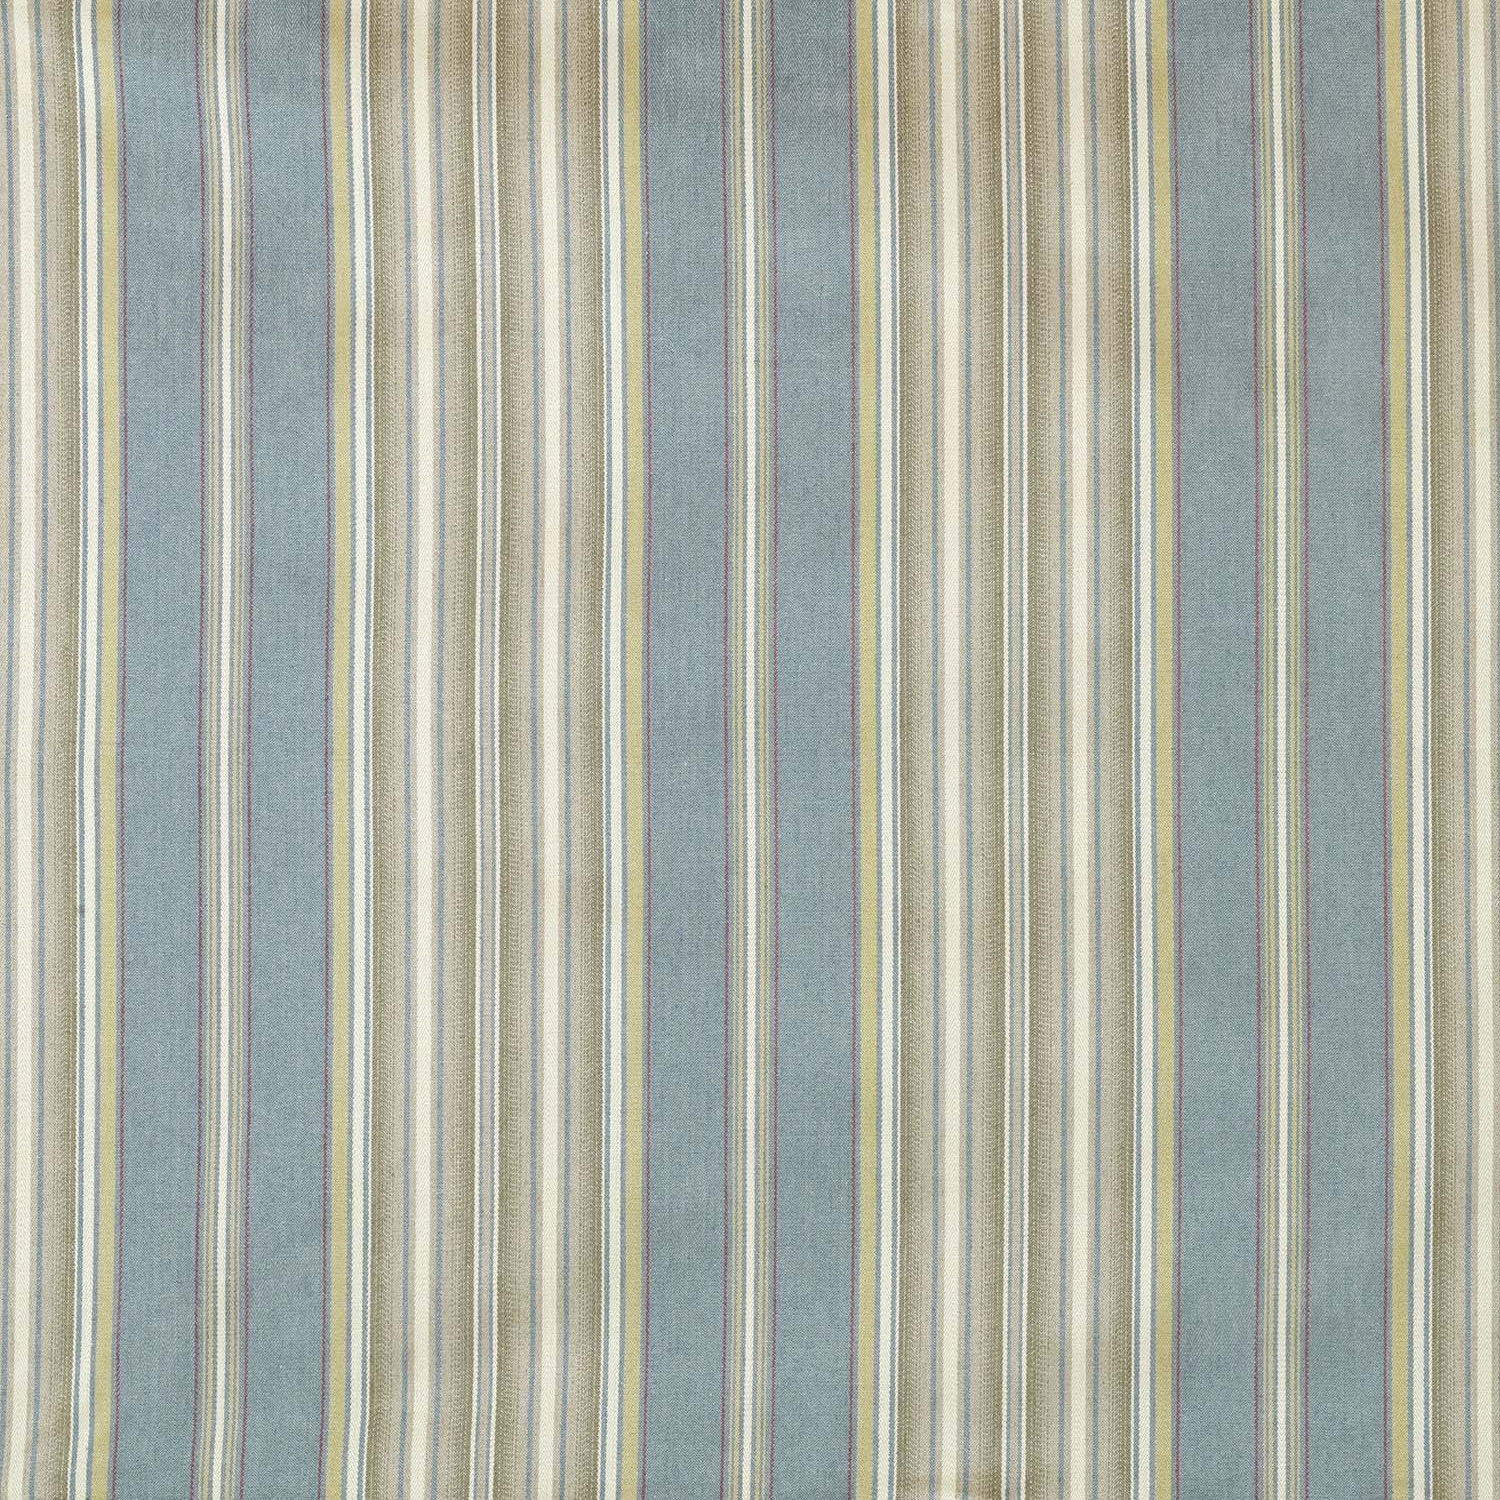 <p><strong>WINDSOR STRIPE</strong>aqua/gold/red 4900-01<a href=/the-winthorp-collection/windsor-stripe-aqua-gold-red-4900-01>More →</a></p>